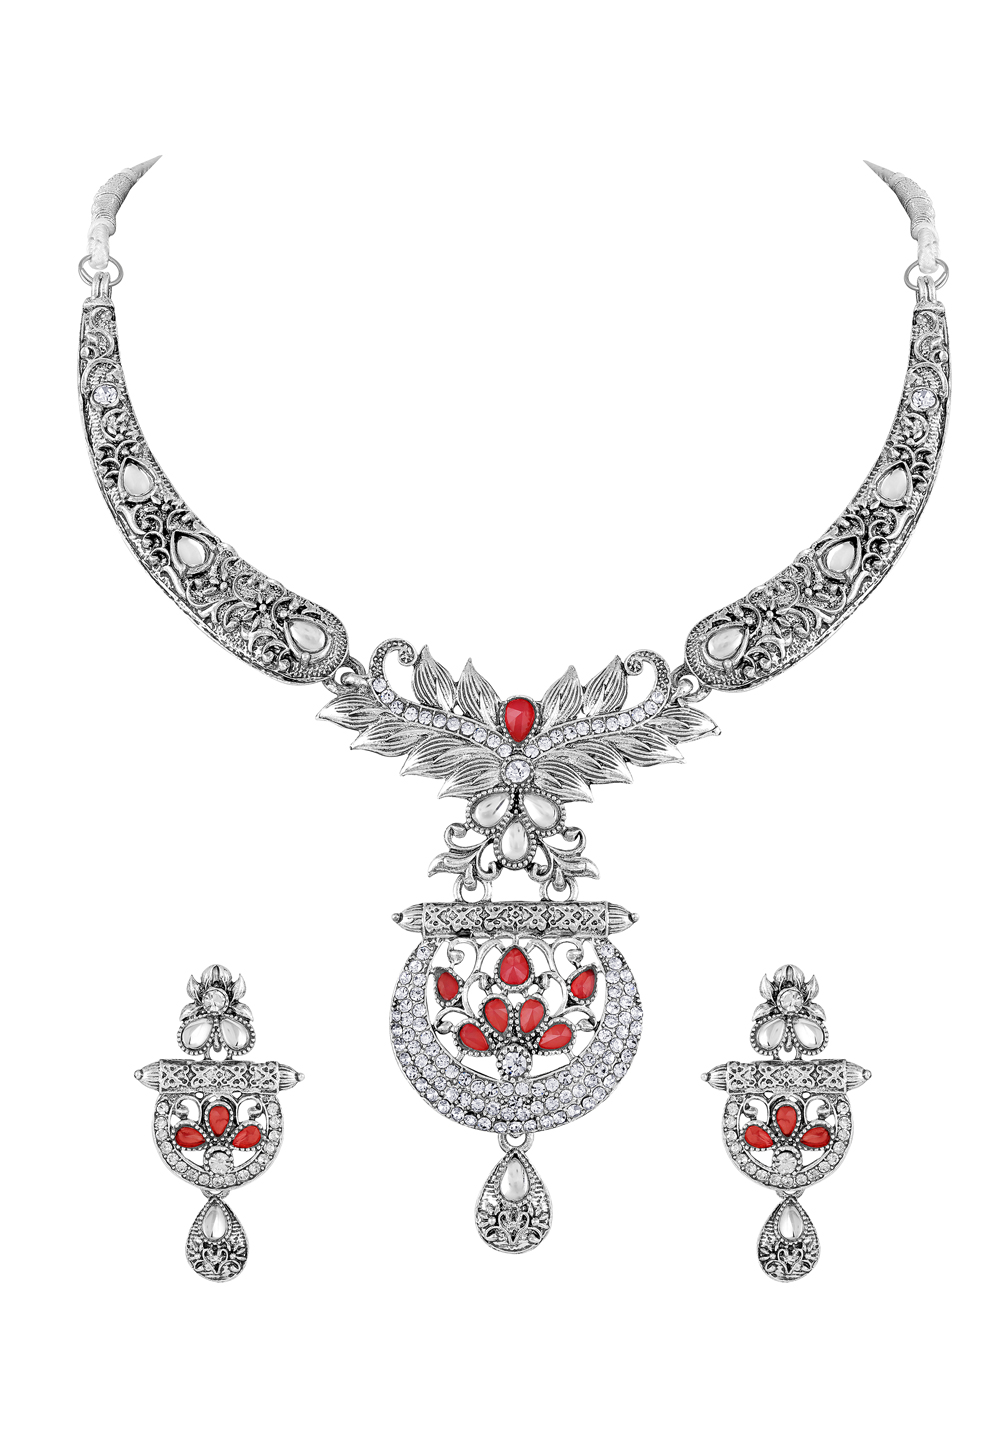 Silver Zinc Necklace Set With Earrings 191908